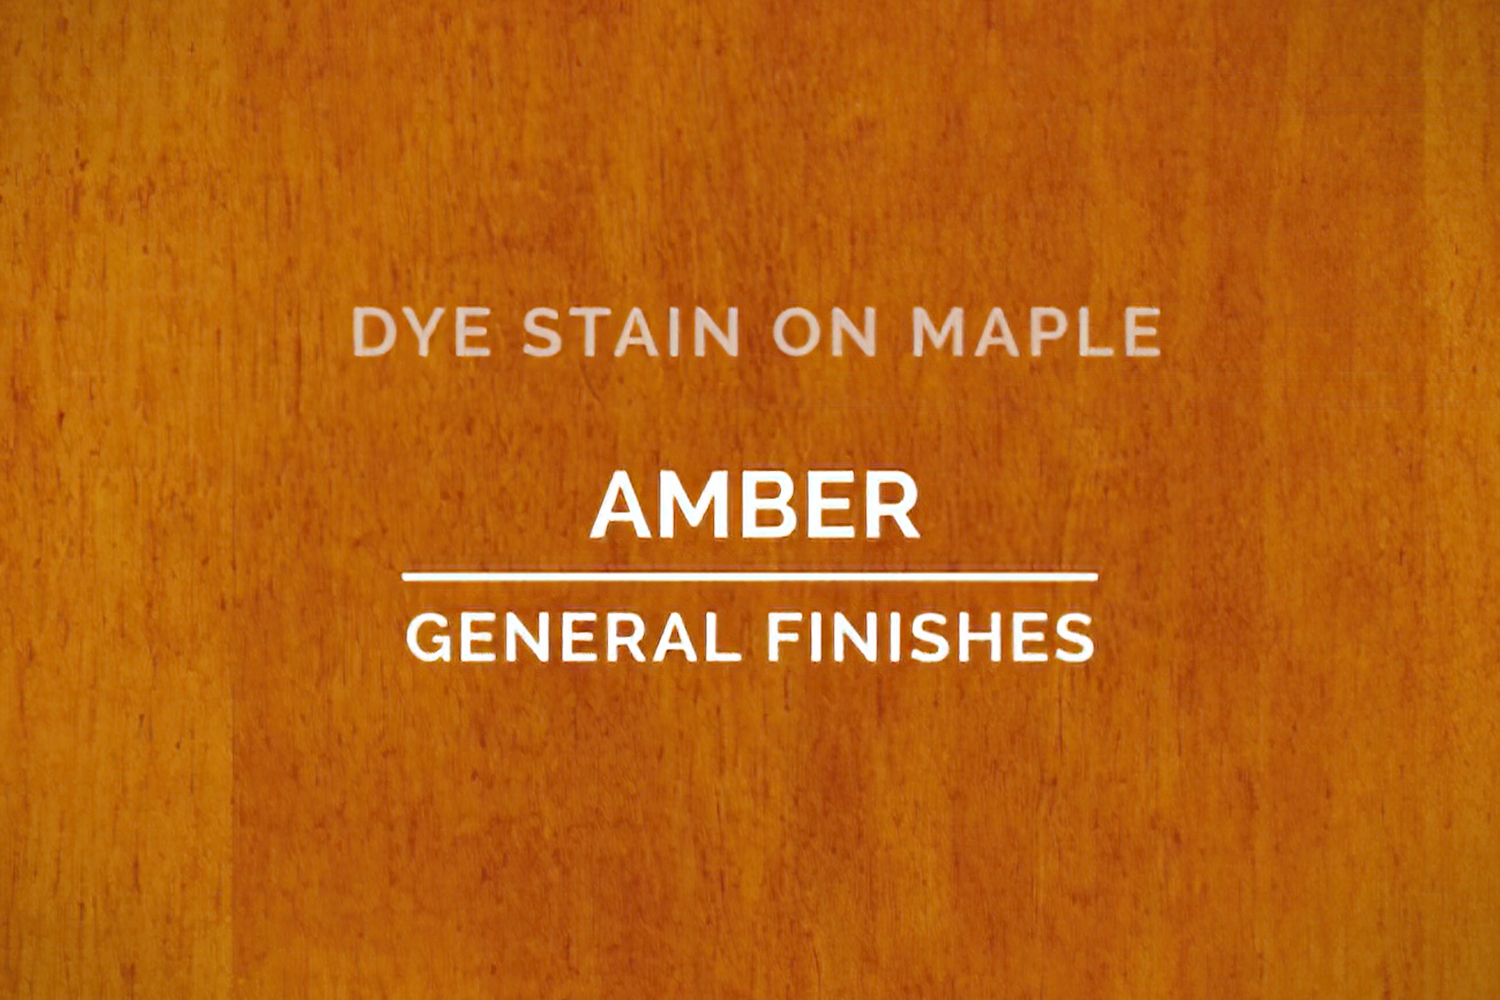 Color Chip Dye Stain Amber On Maple General Finishes Copy